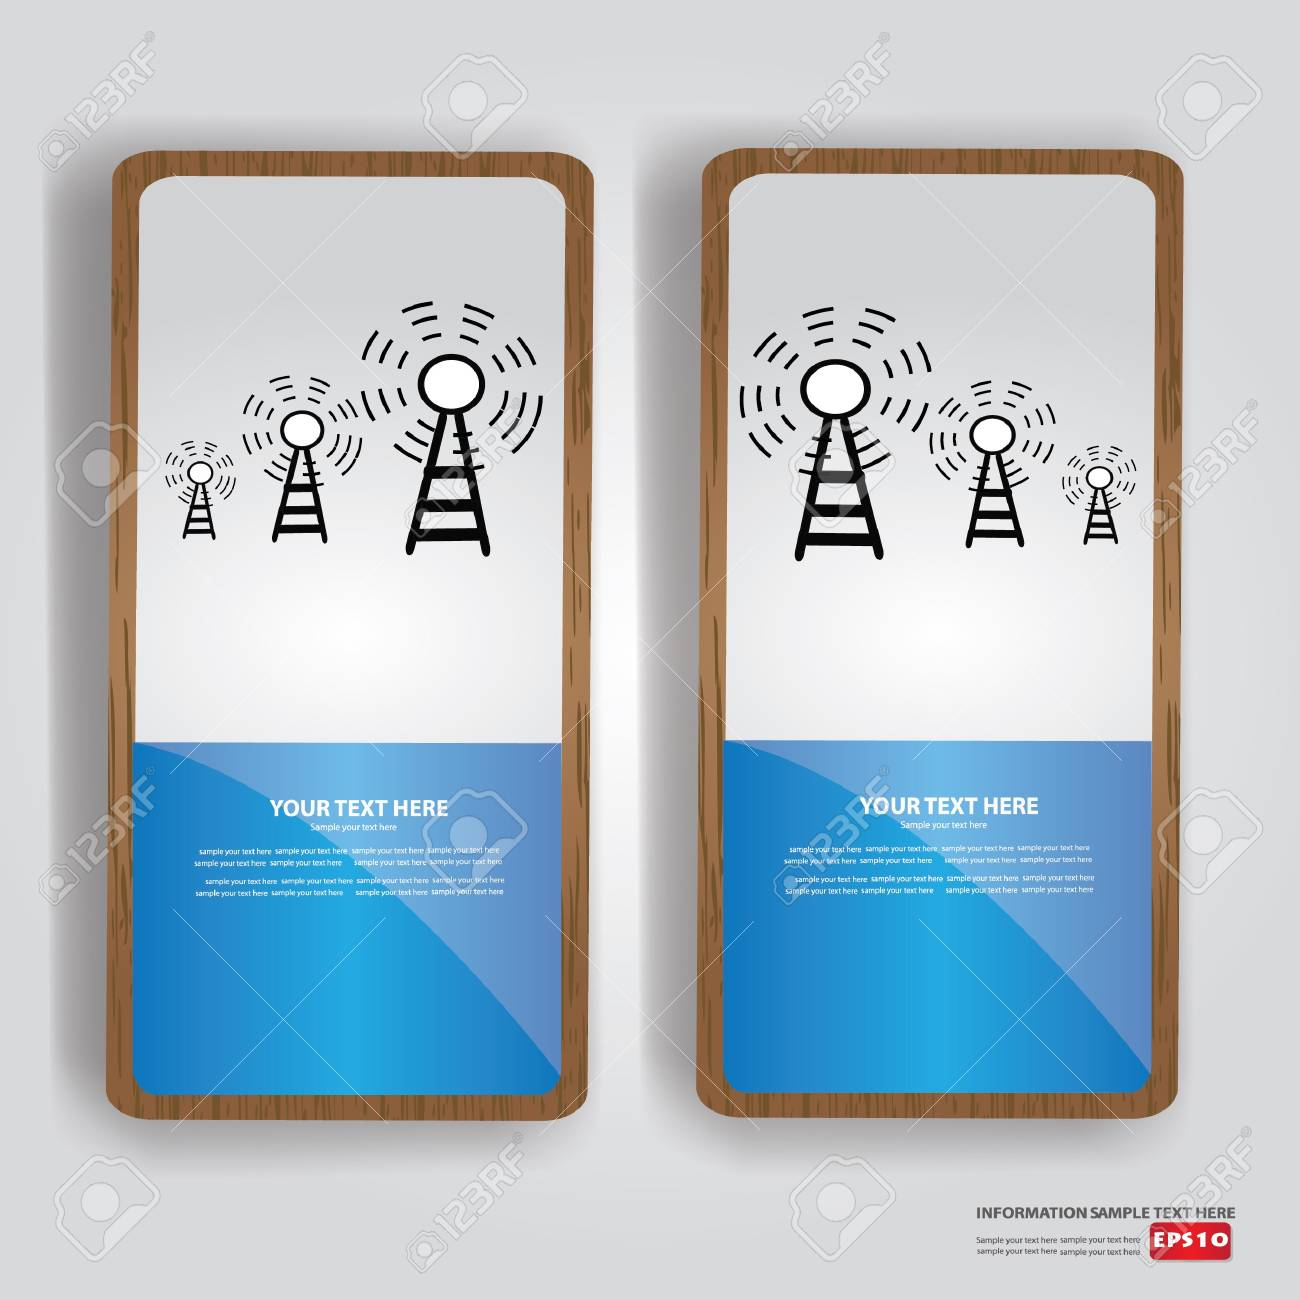 Wireless banner,Vector Stock Vector - 18751040